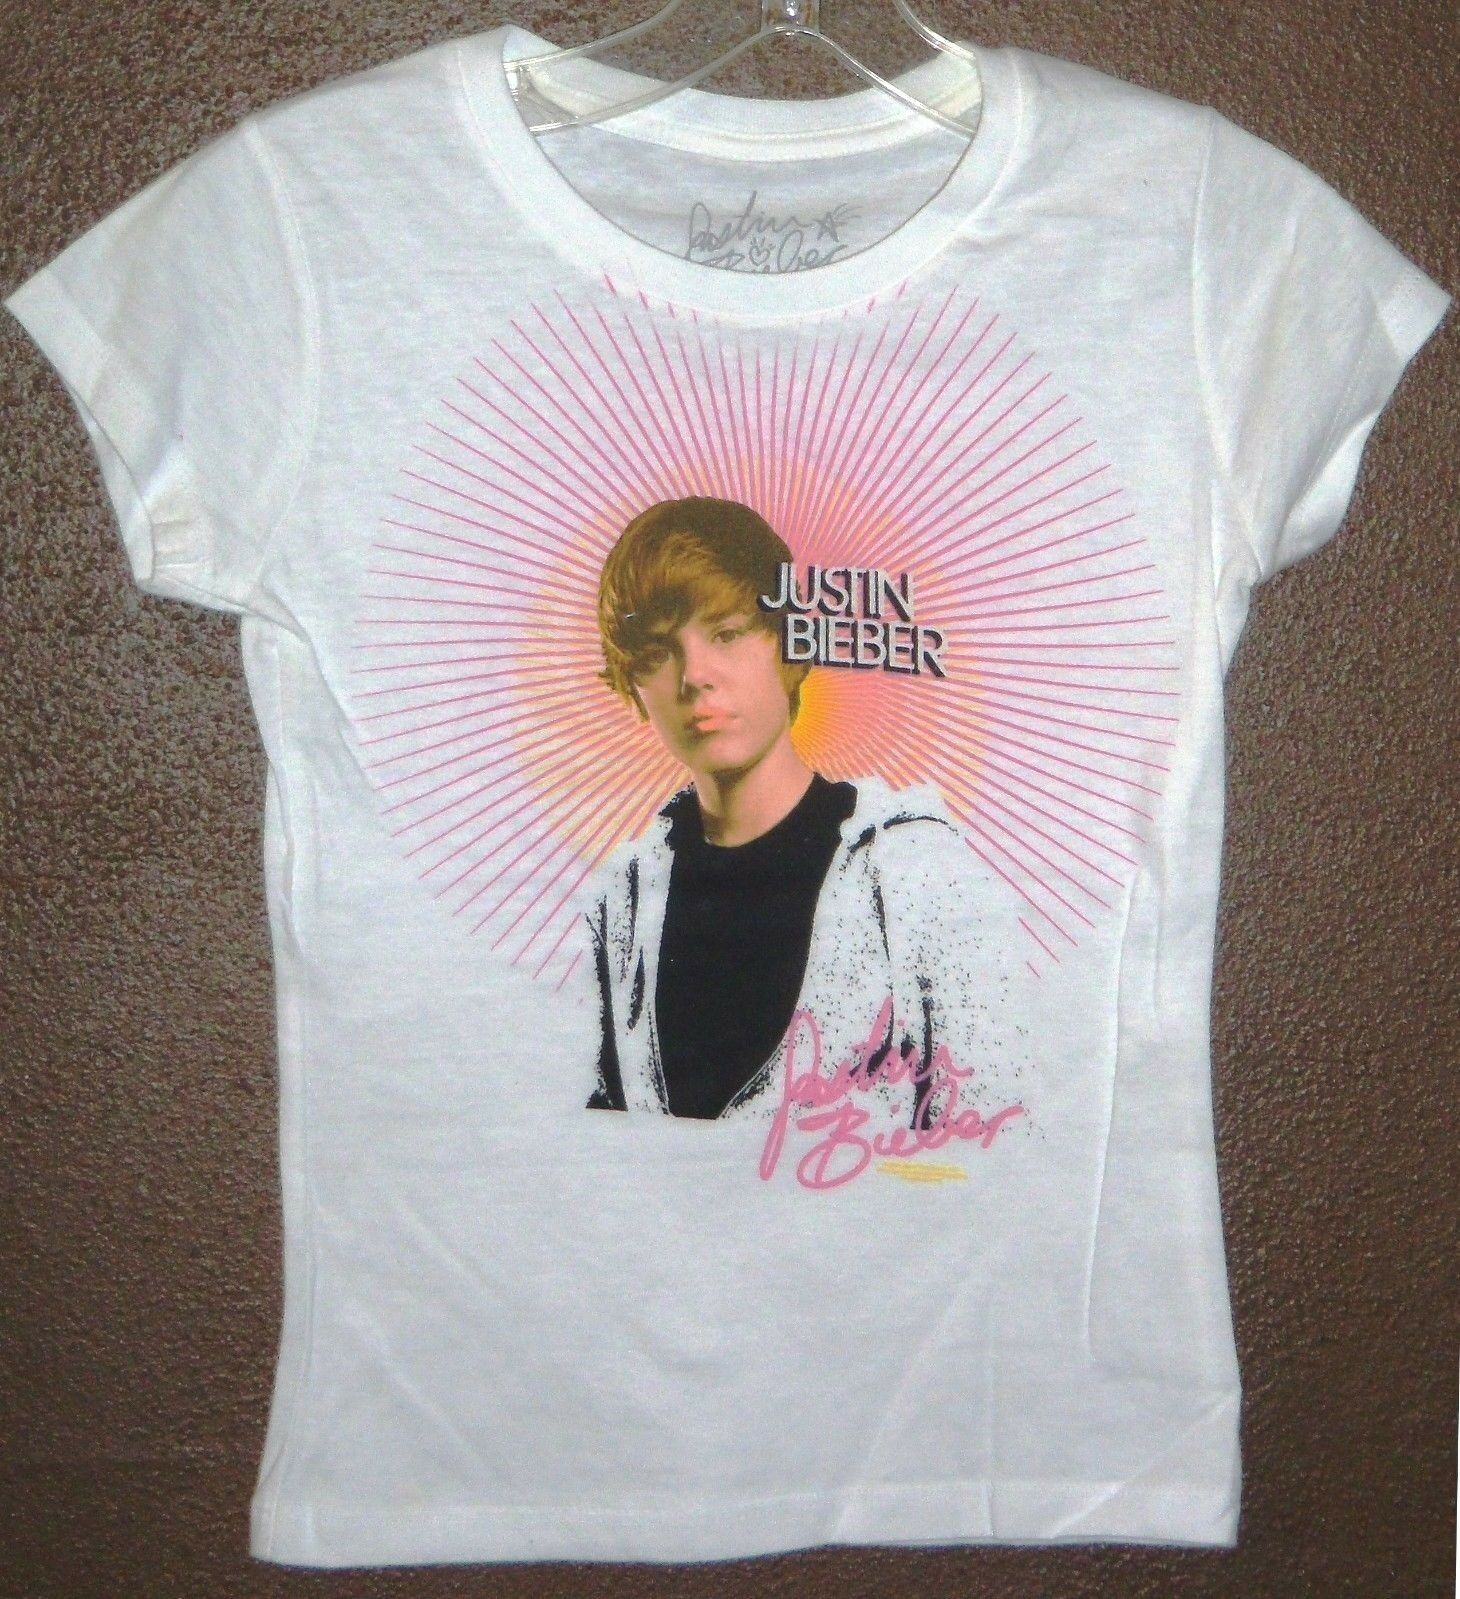 new justin bieber sunburst portrait kids girls. Black Bedroom Furniture Sets. Home Design Ideas